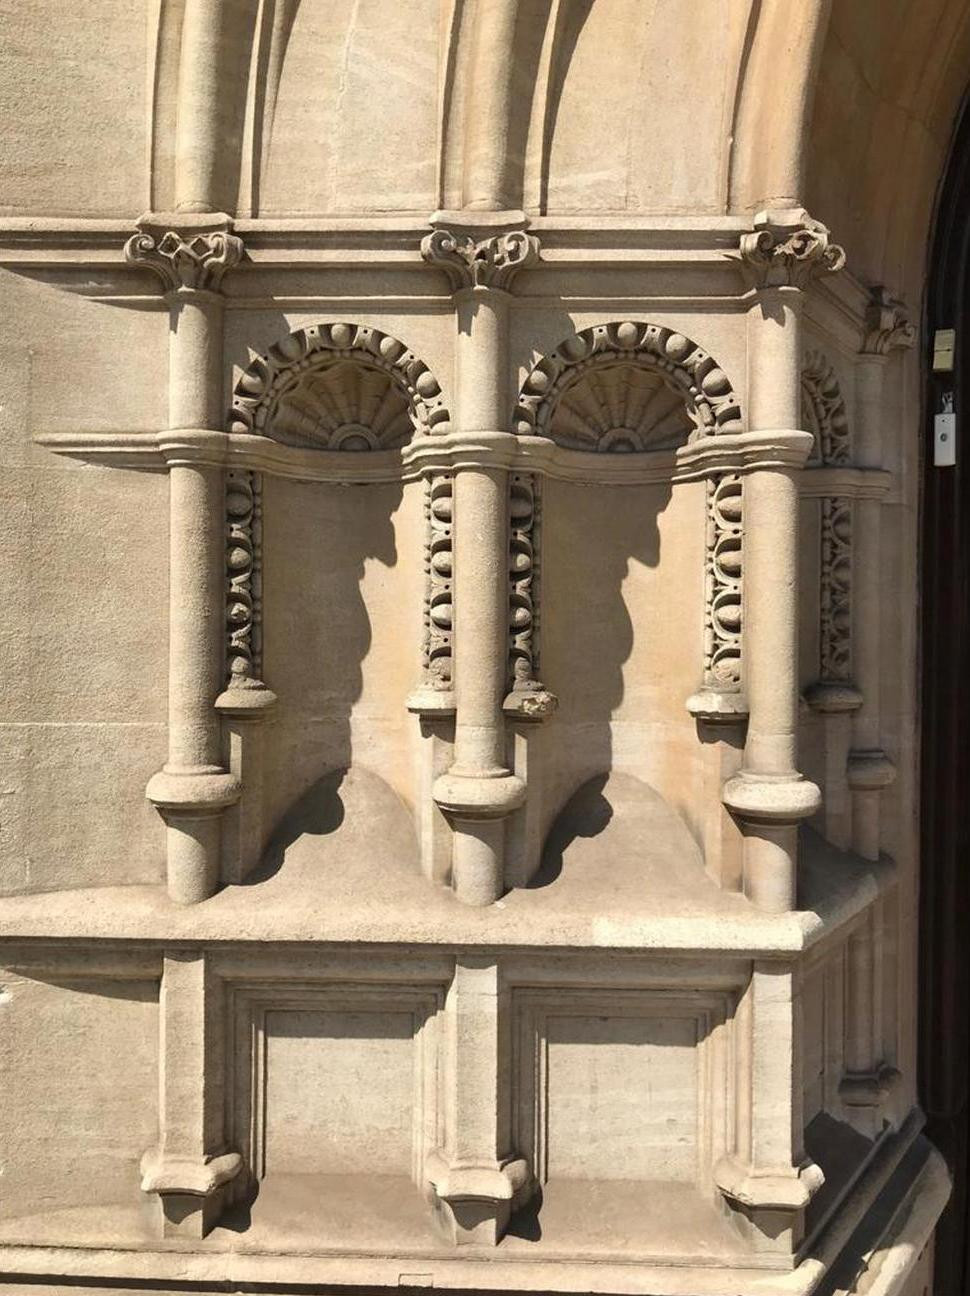 Period mouldings and architecture